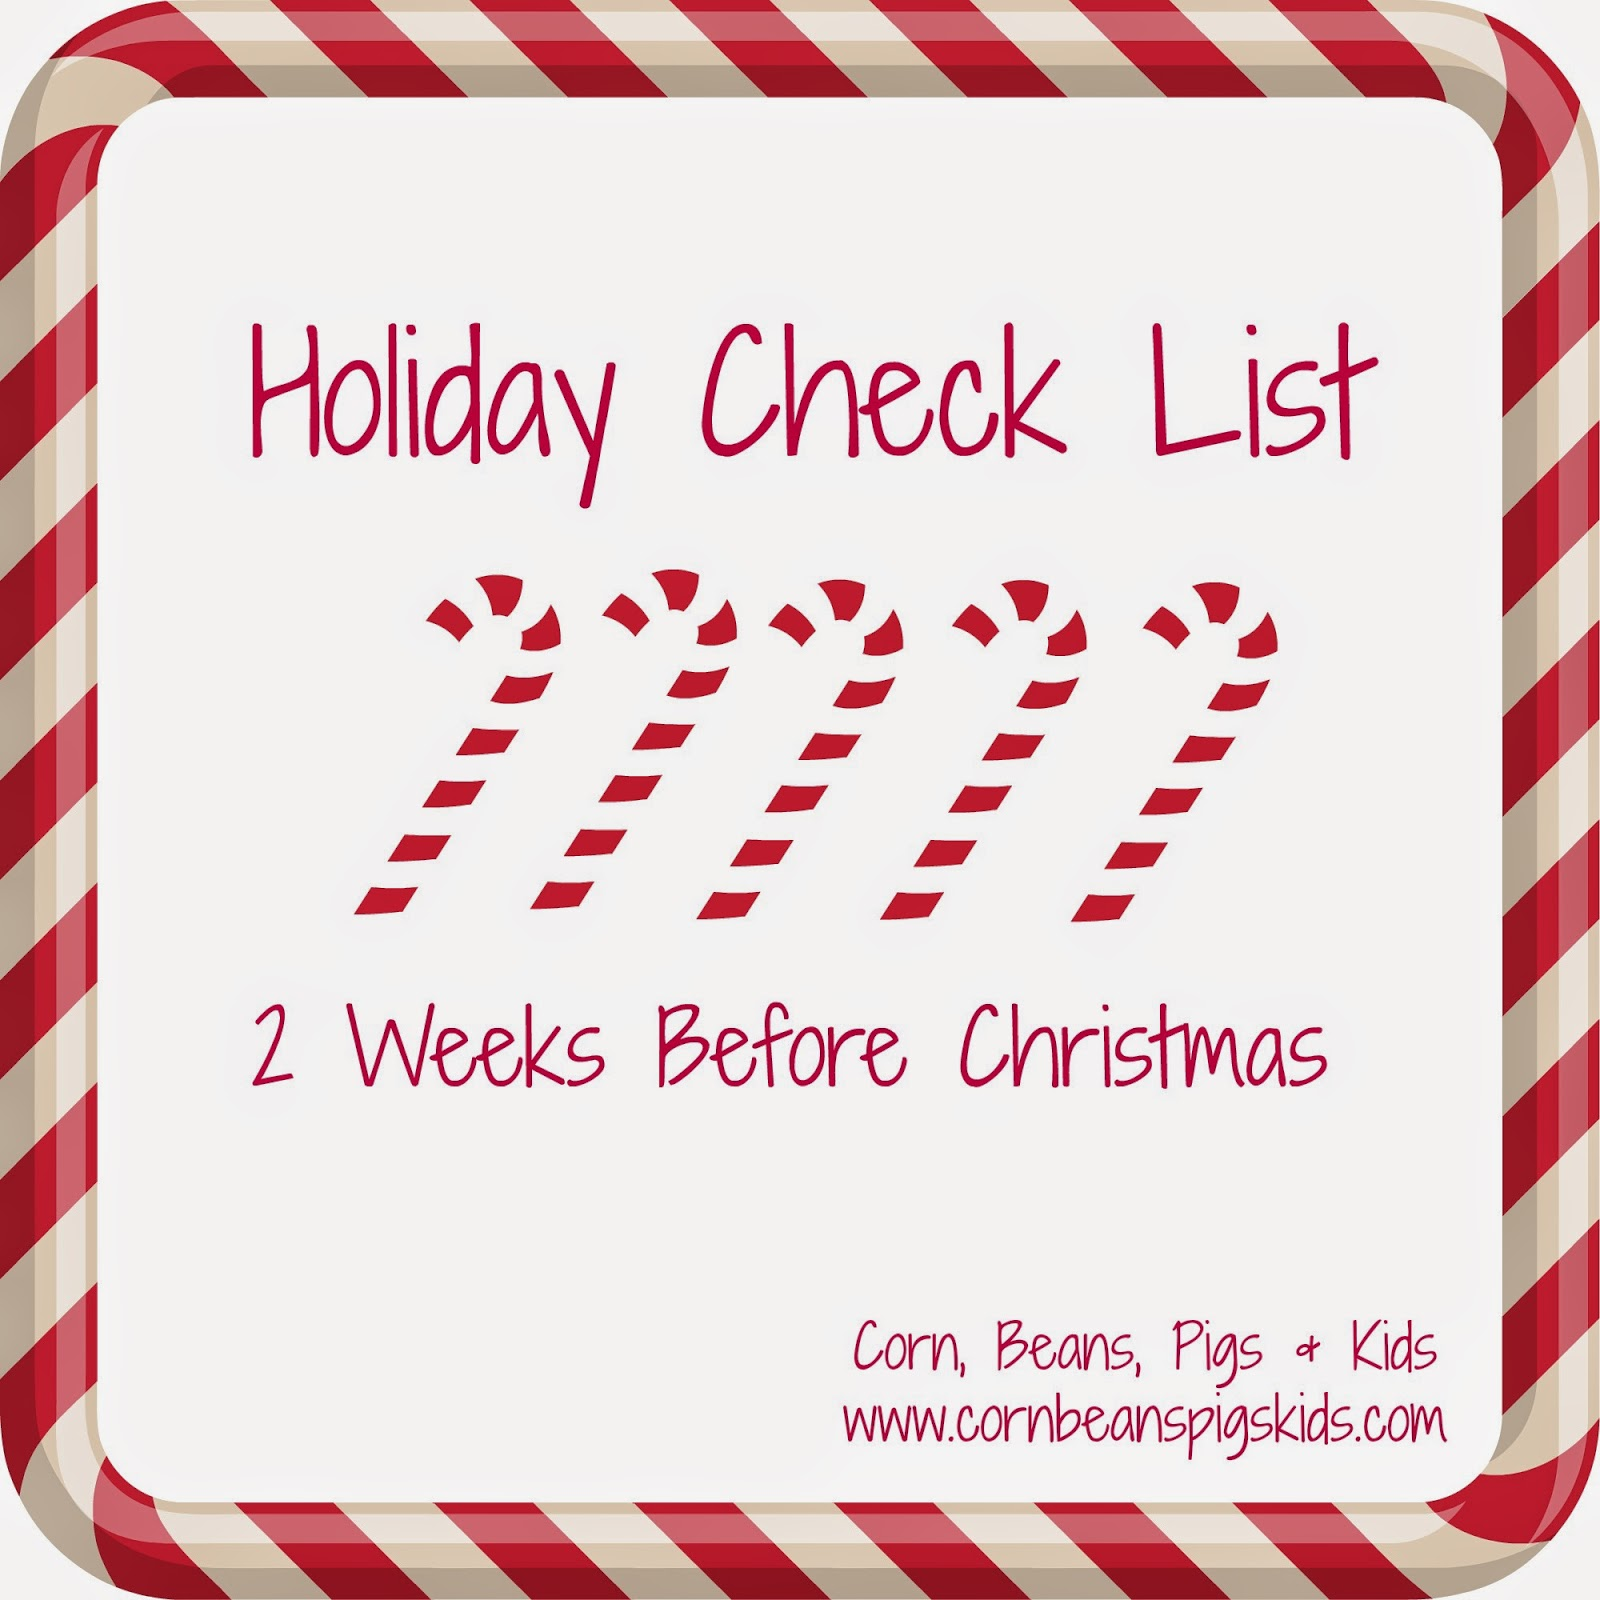 Holiday Check List - 2 Weeks Before Christmas